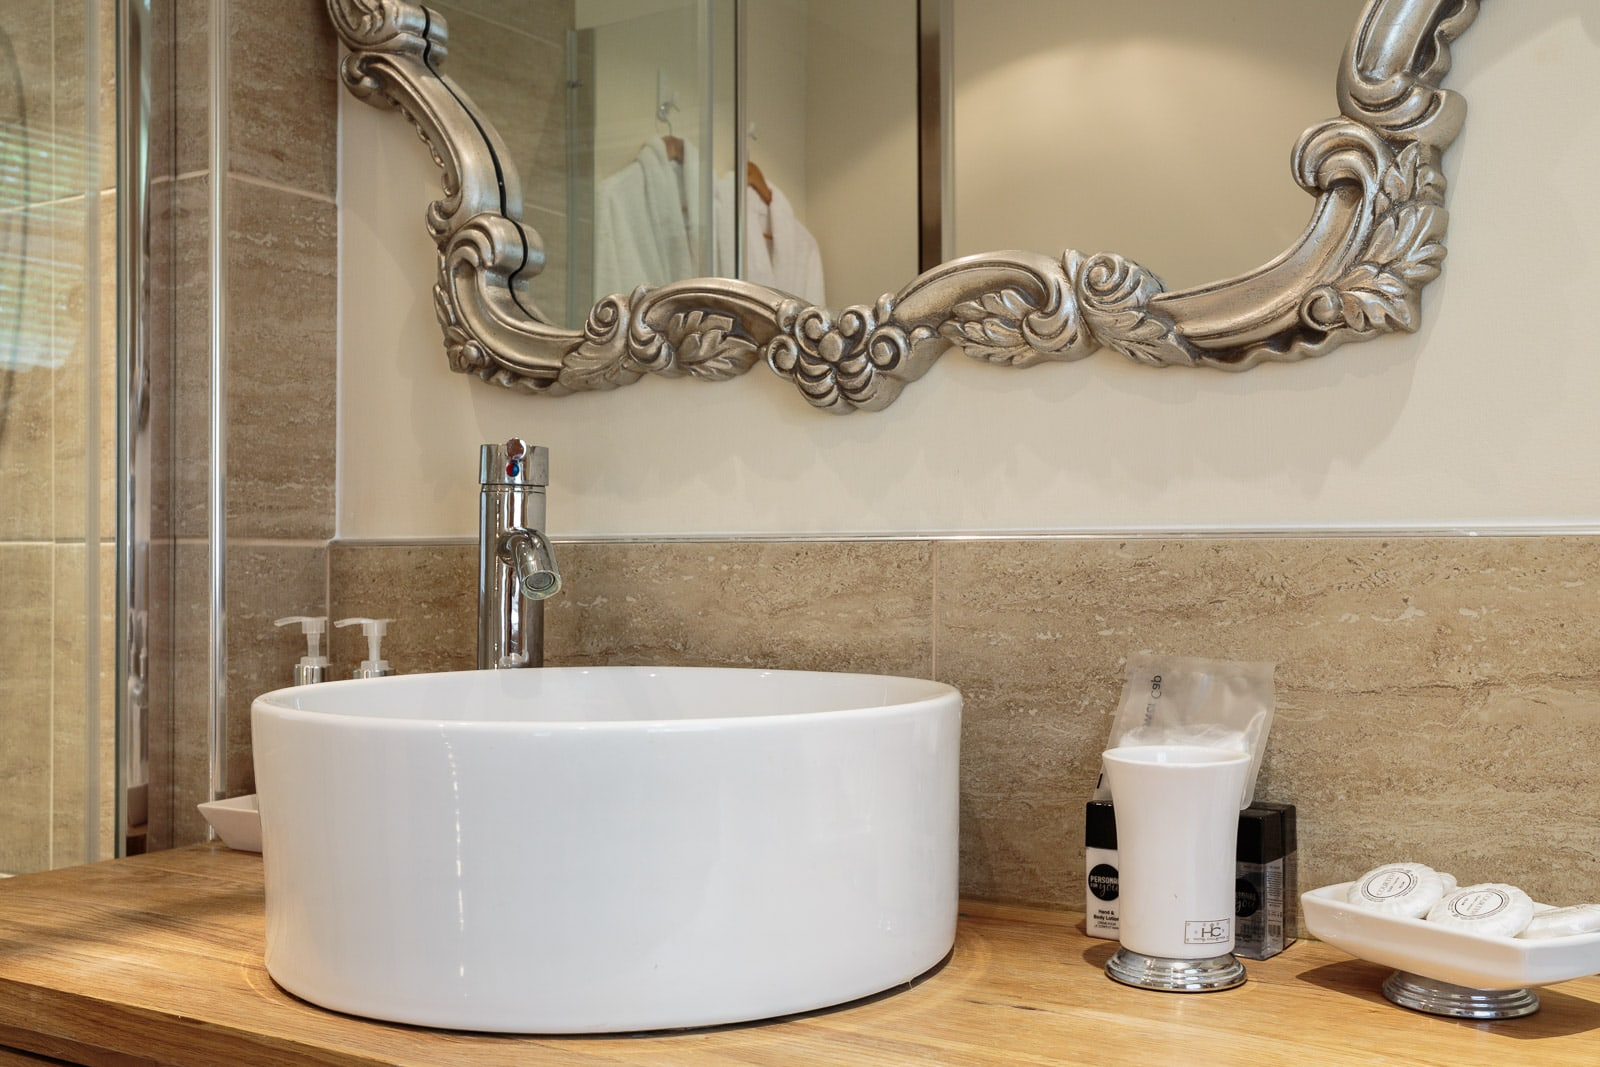 White counter-top bathroom basin with feature ornate mirror